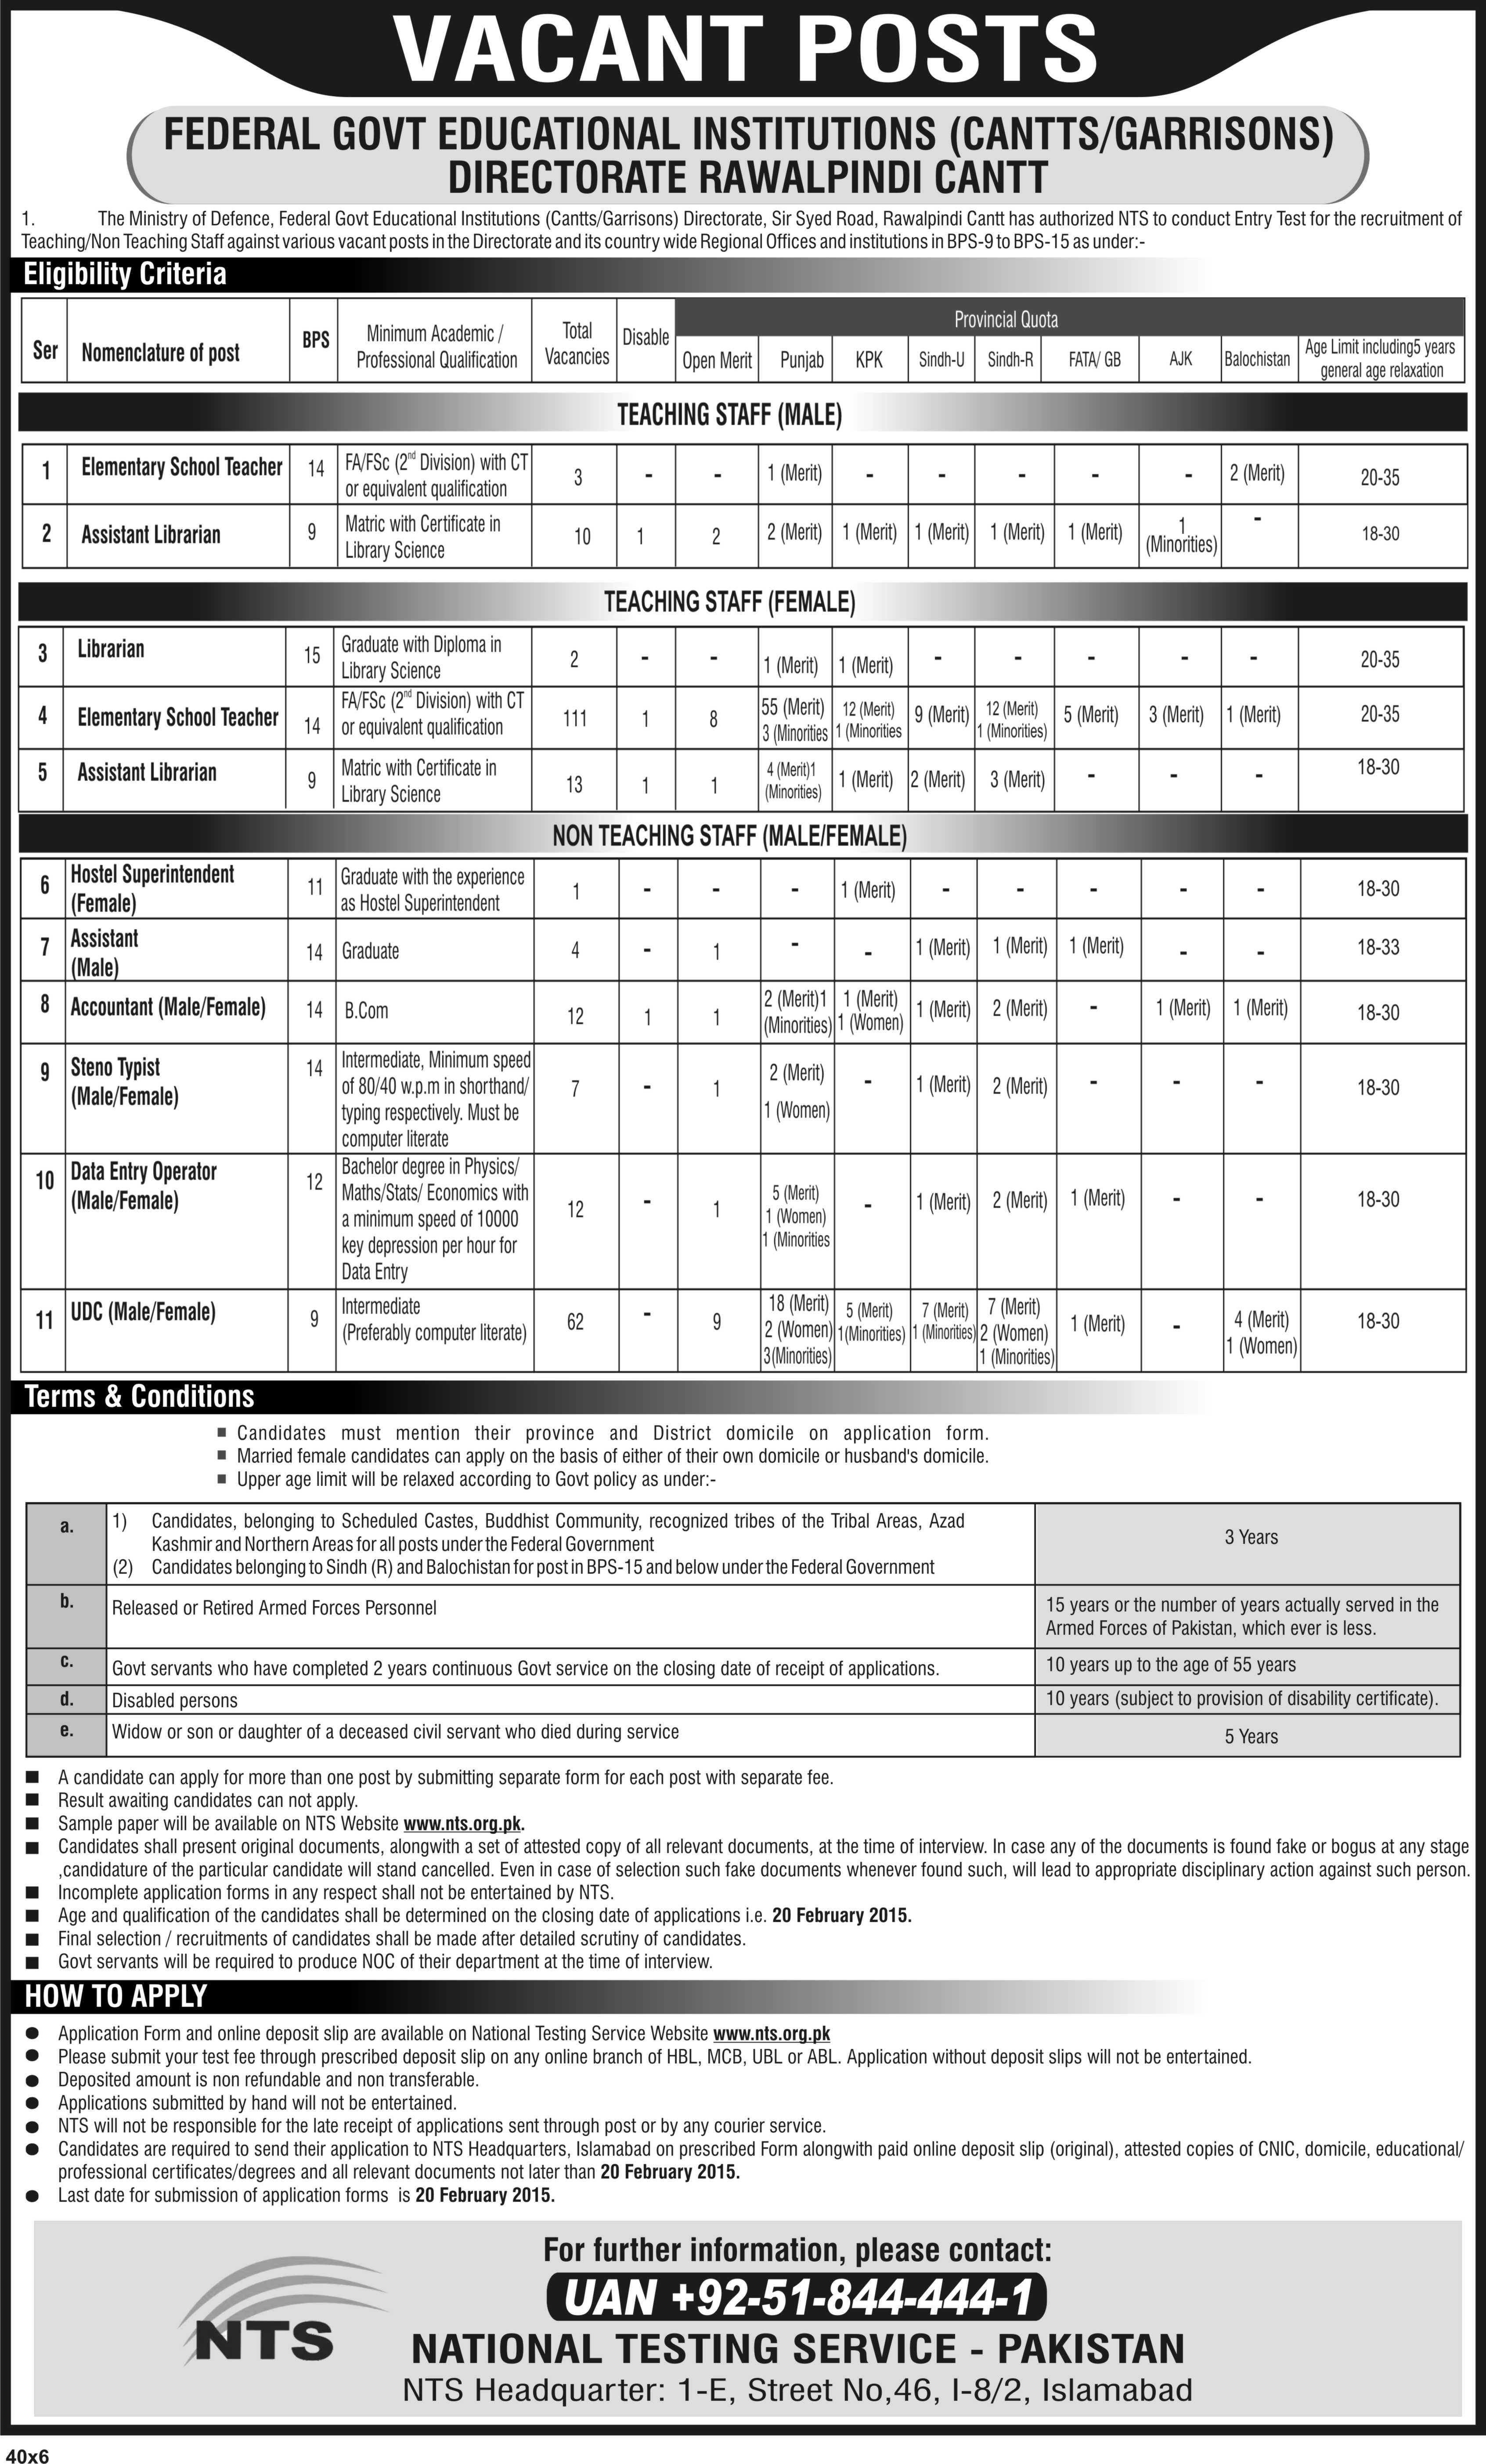 Rawalpindi Cantt Garrisons ministry of Defence jobs